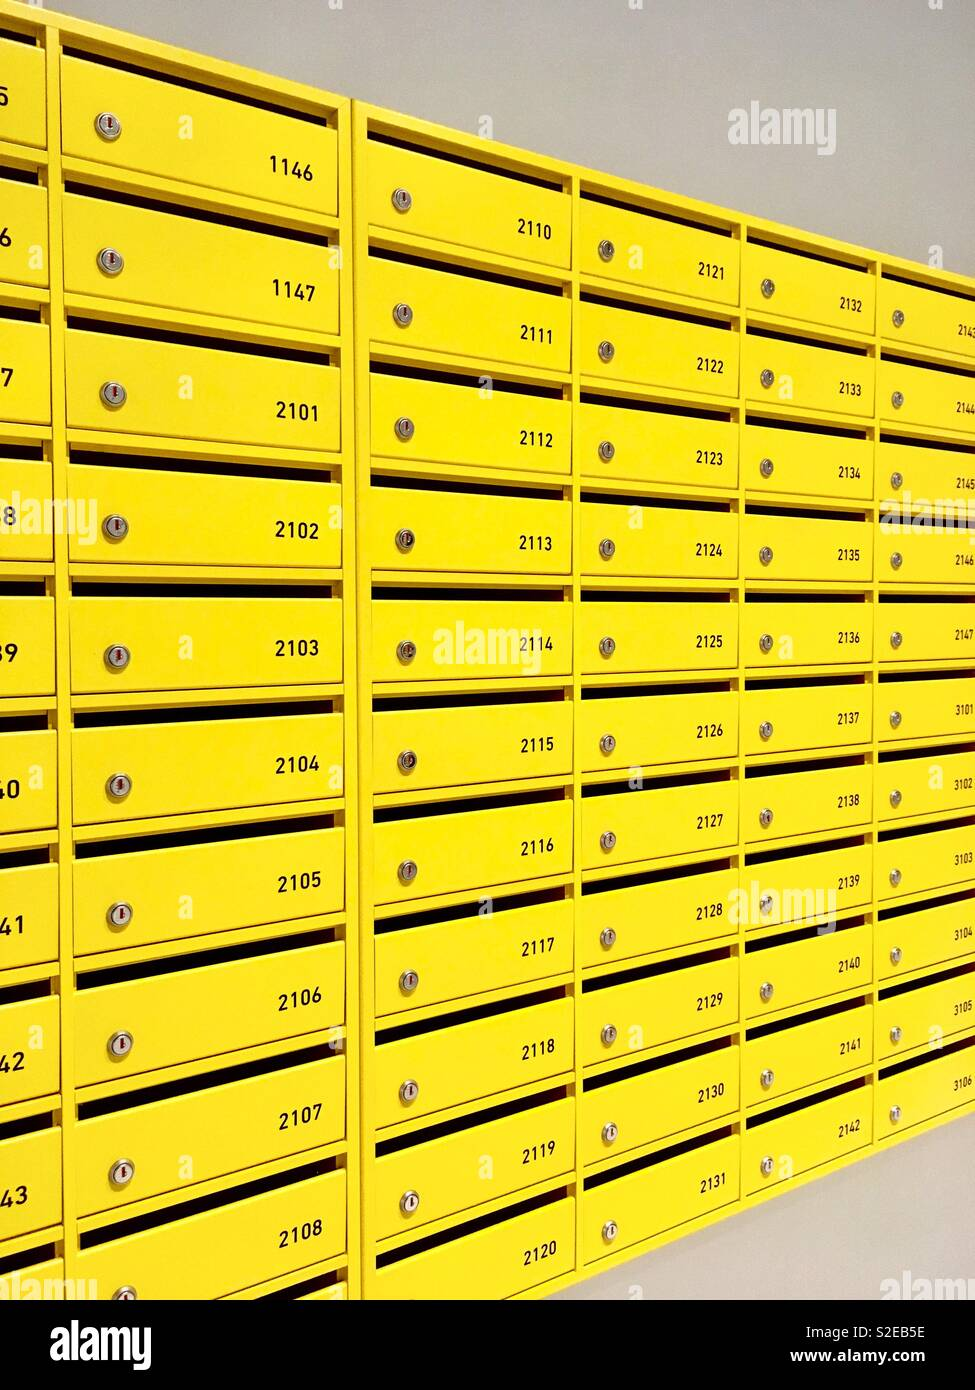 Yellow Mail boxes - Stock Image